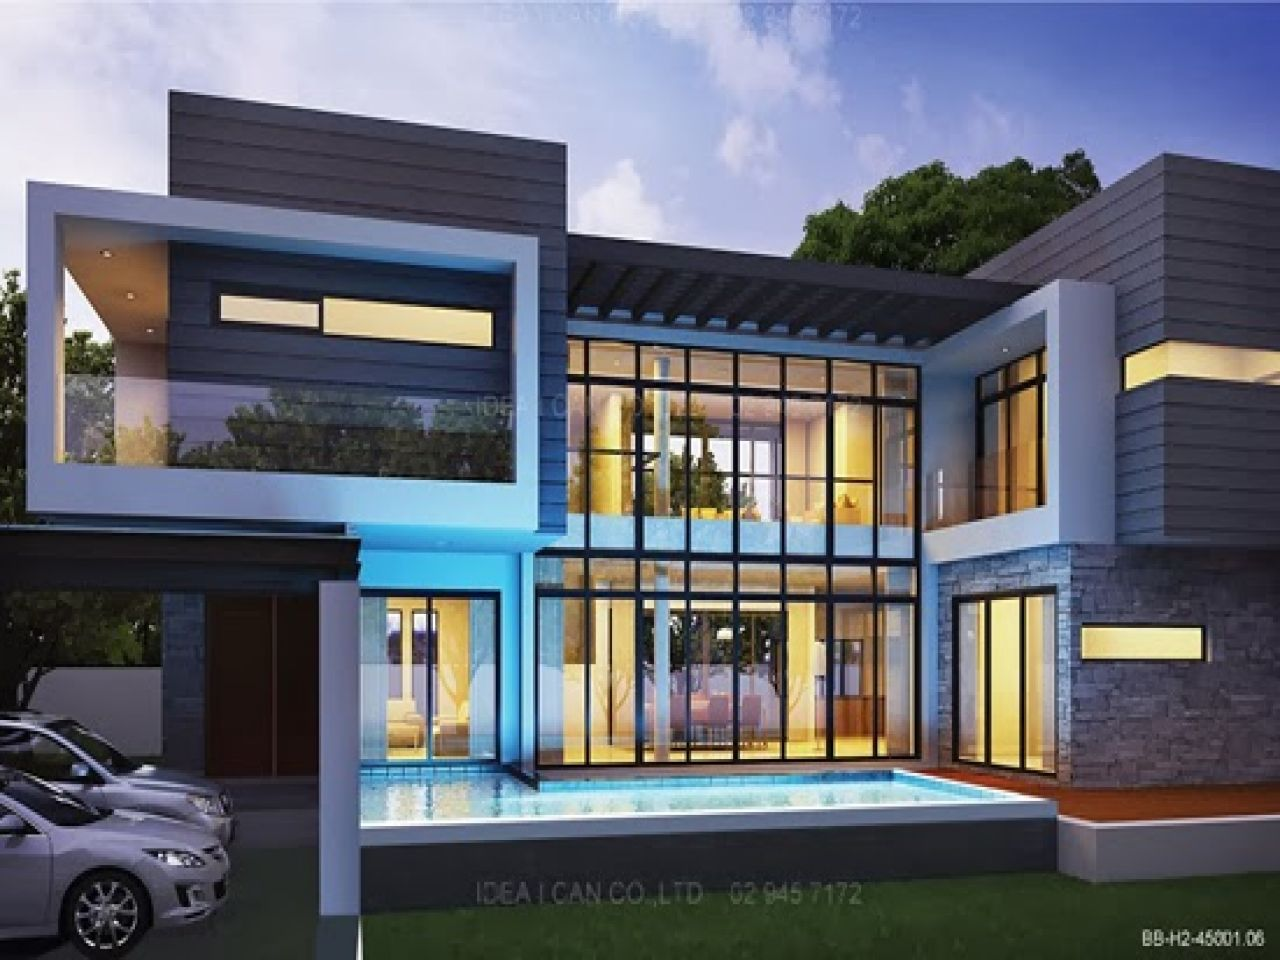 Residential 2 storey house plan modern 2 story house plans Contemporary home construction